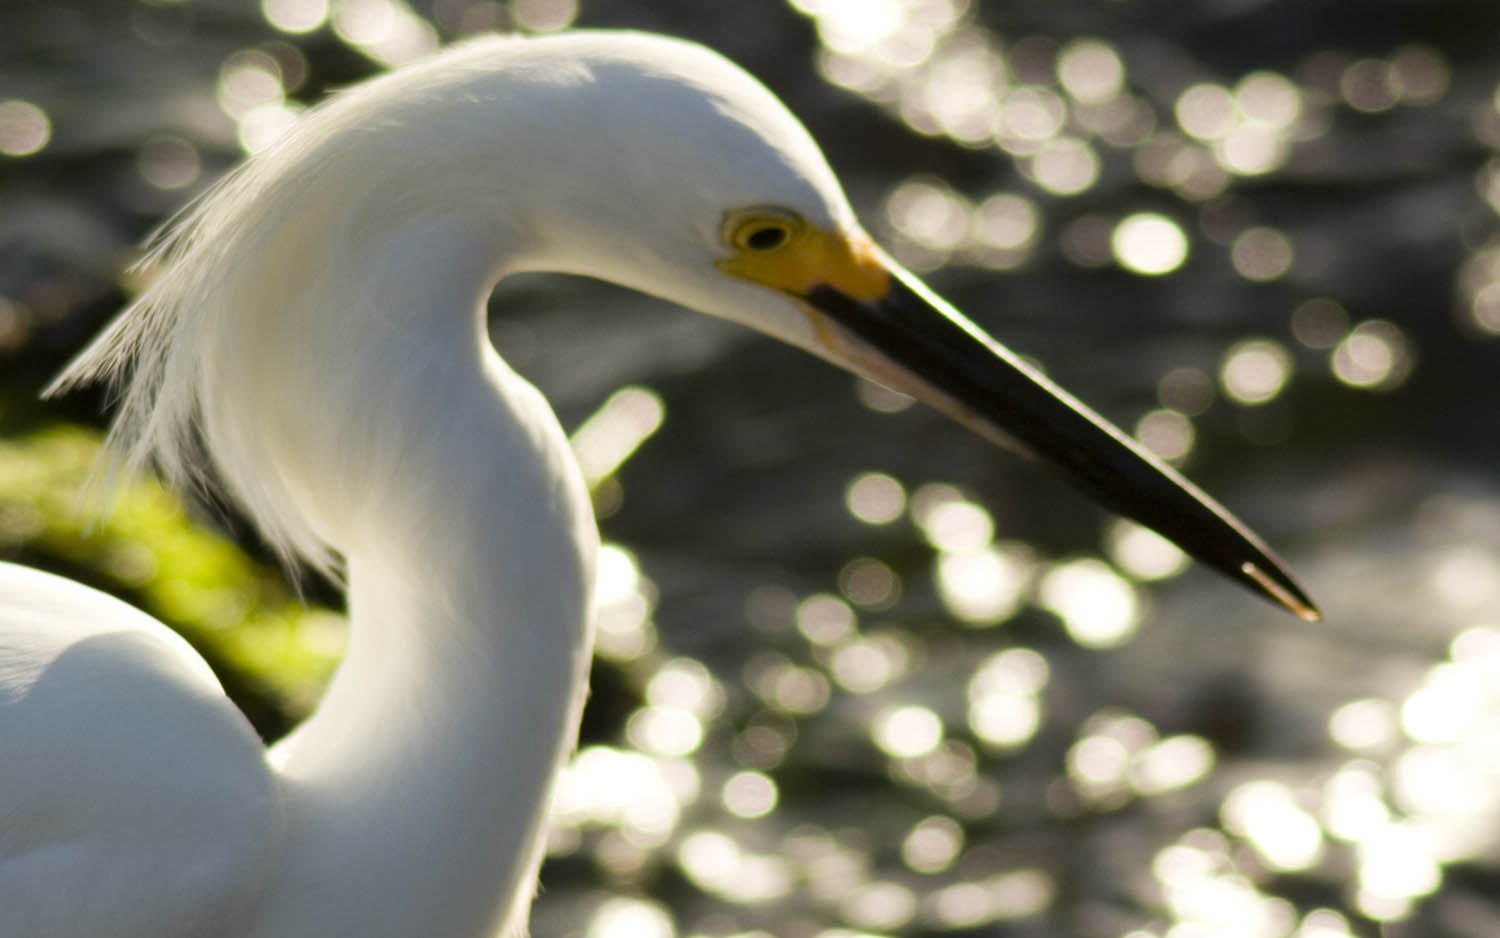 Beautiful And Dangerous Animals Birds Hd Wallpapers: Snowy Egret Fresh Hd Wallpapers 2013